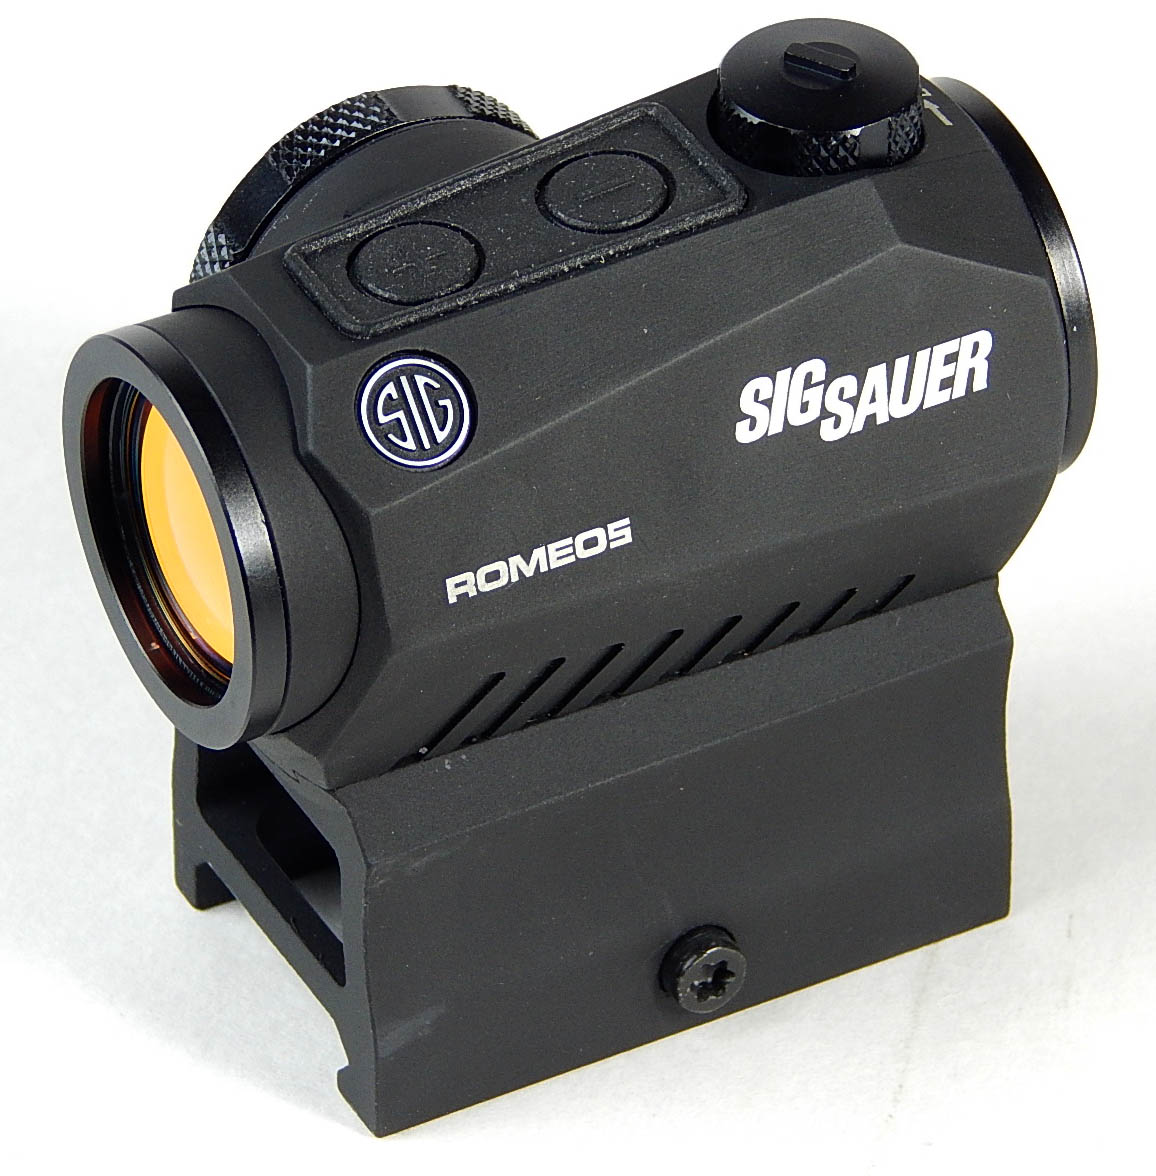 Sig Sauer Romeo5 1x20mm 2 MOA Red Dot Sight w/ Mounts - SOR52001